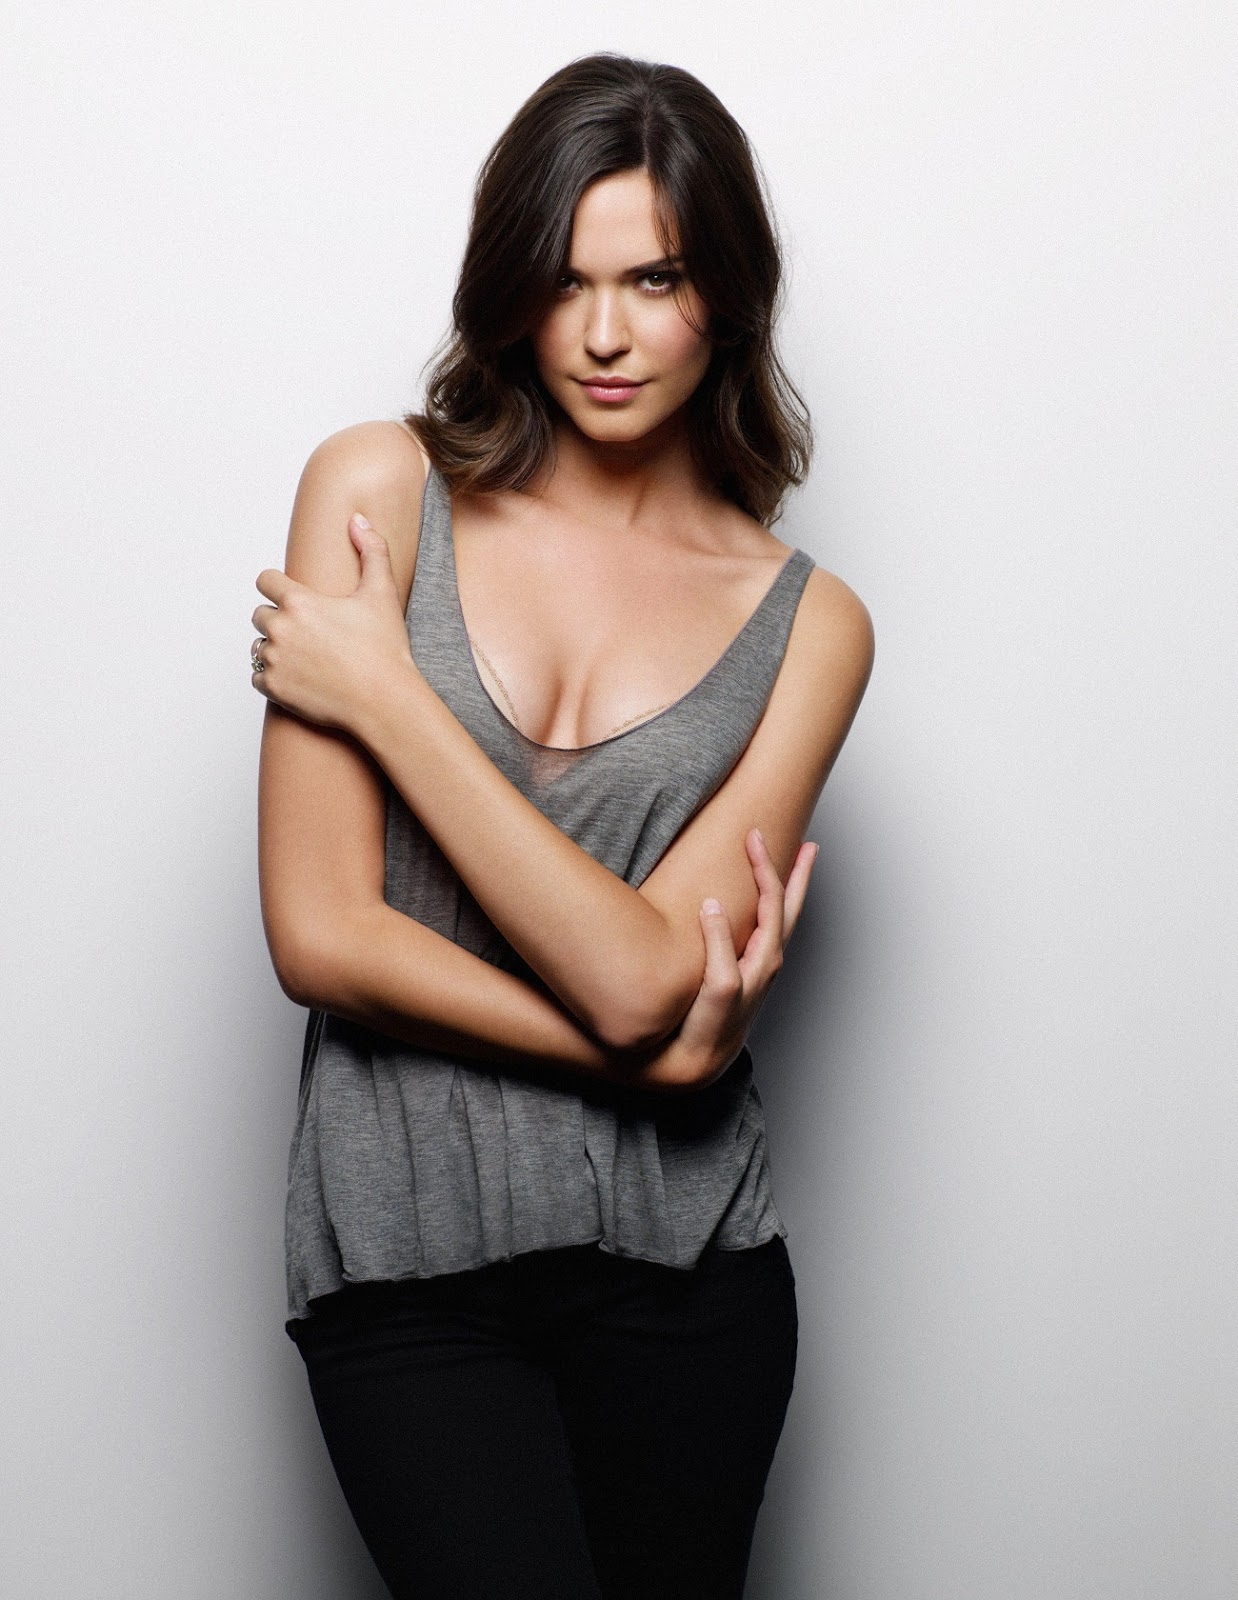 Cleavage Odette Annable